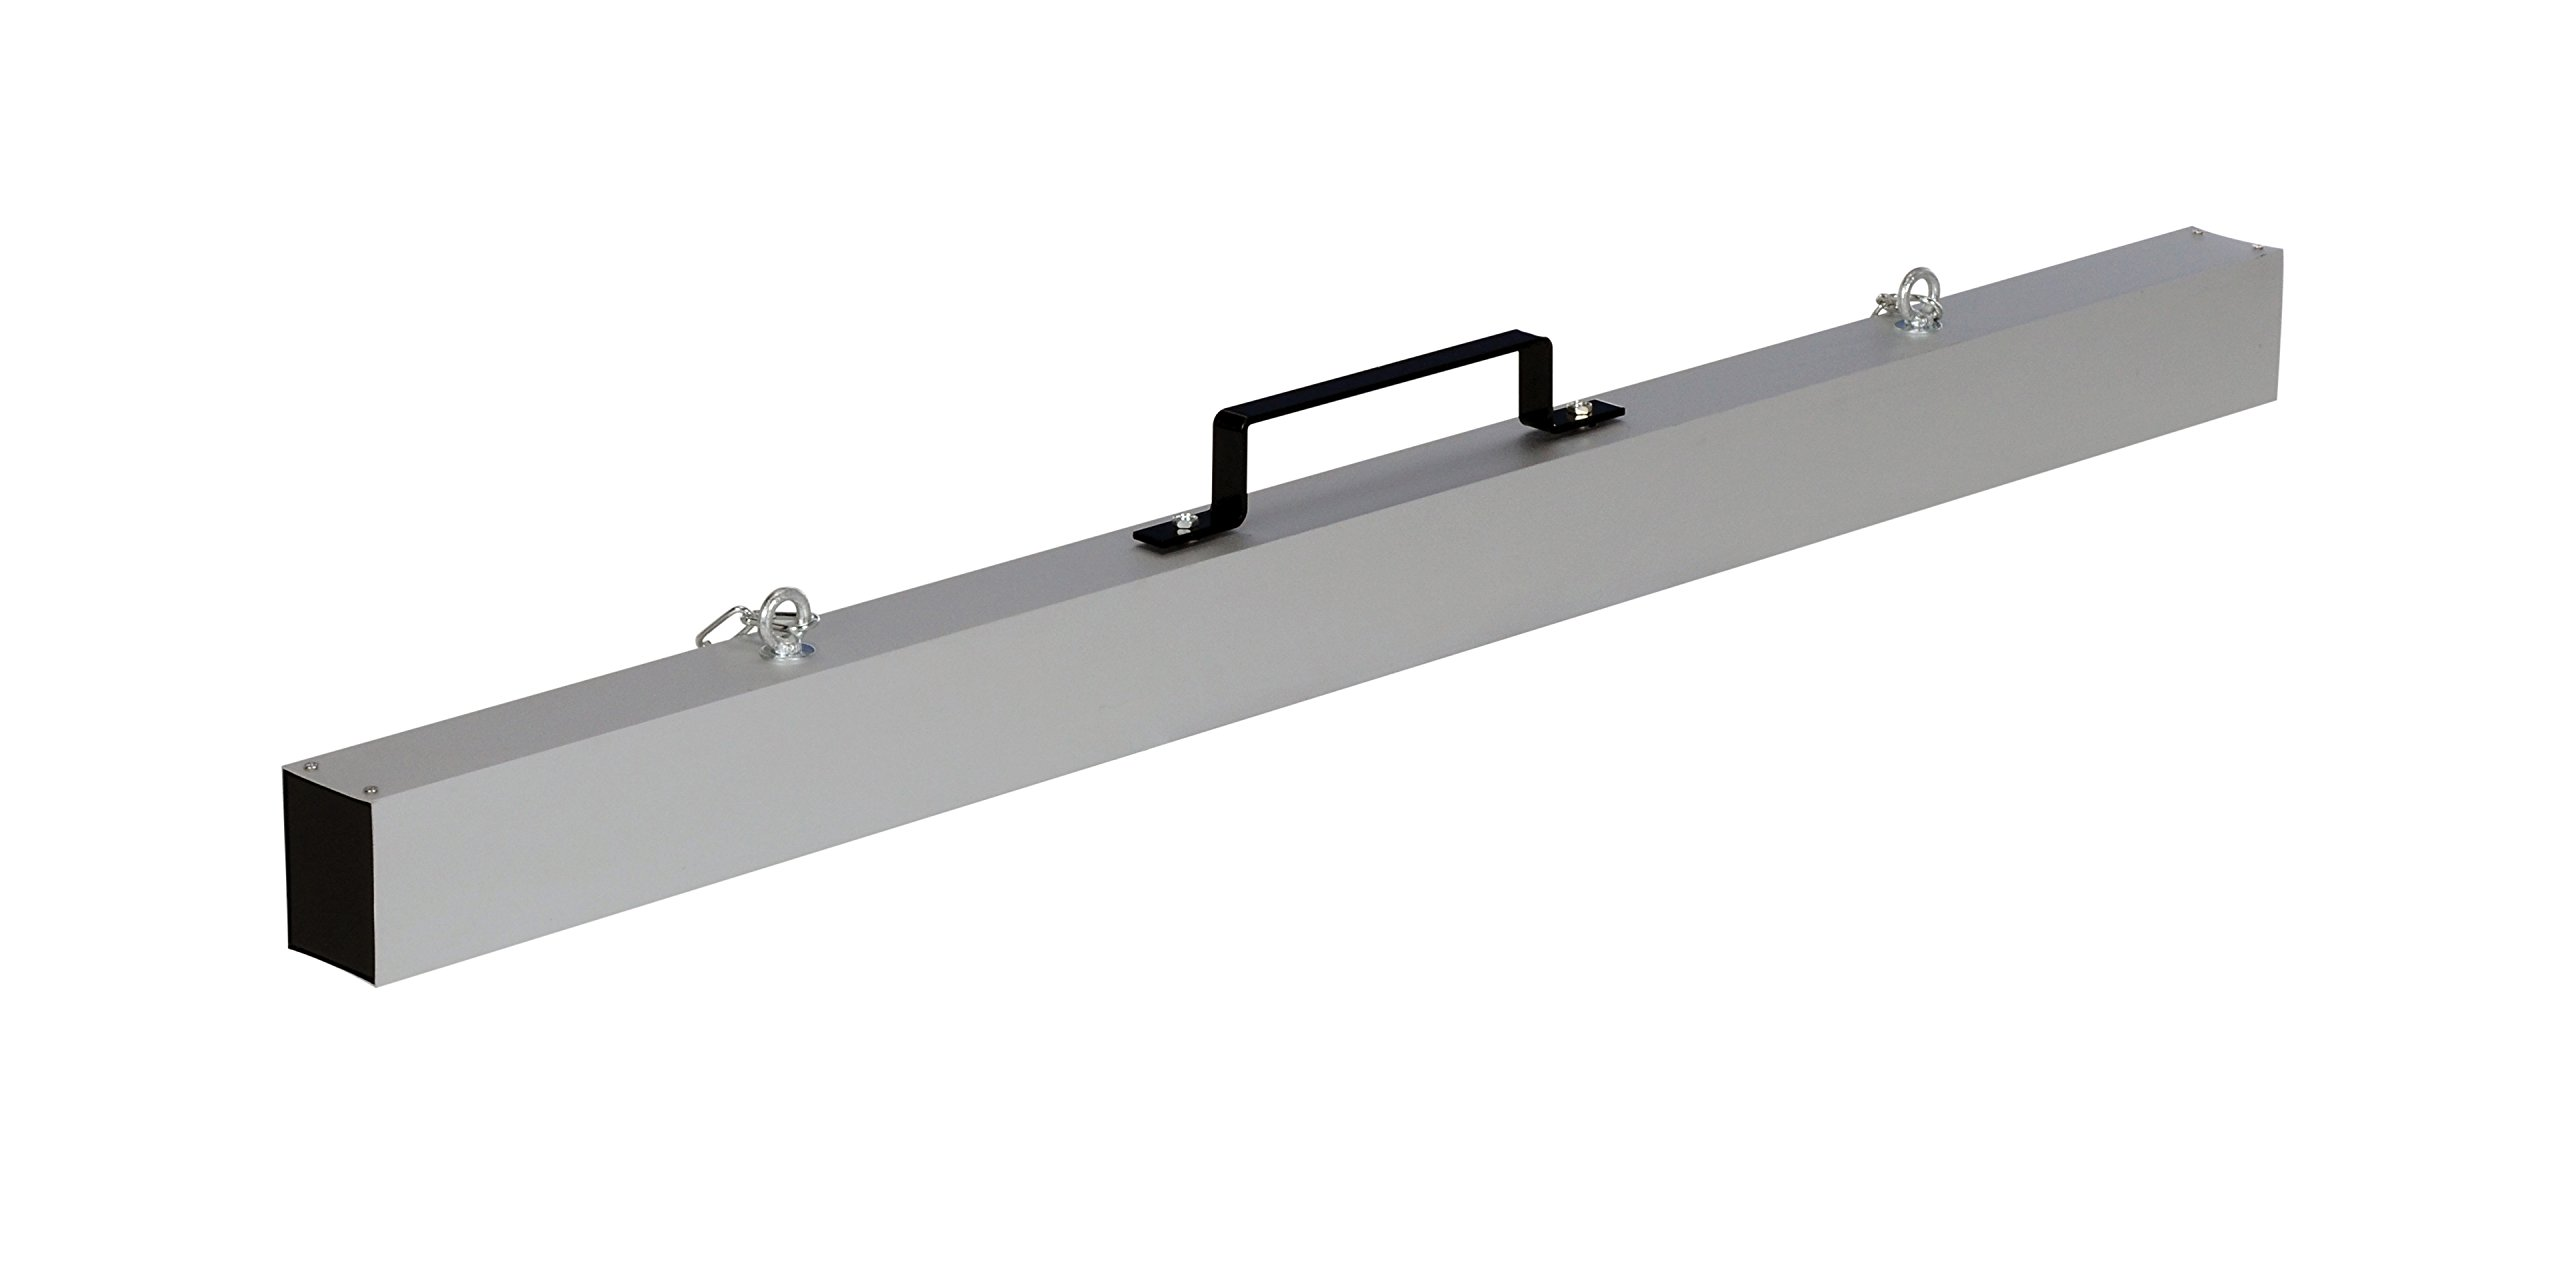 Vestil MS-60 Magnetic Chain Hanger Release Sweeper, 60'' Overall Dimensions, 3'' Length x 60'' Width x 6-3/4'' Height, 65 lb. Capacity